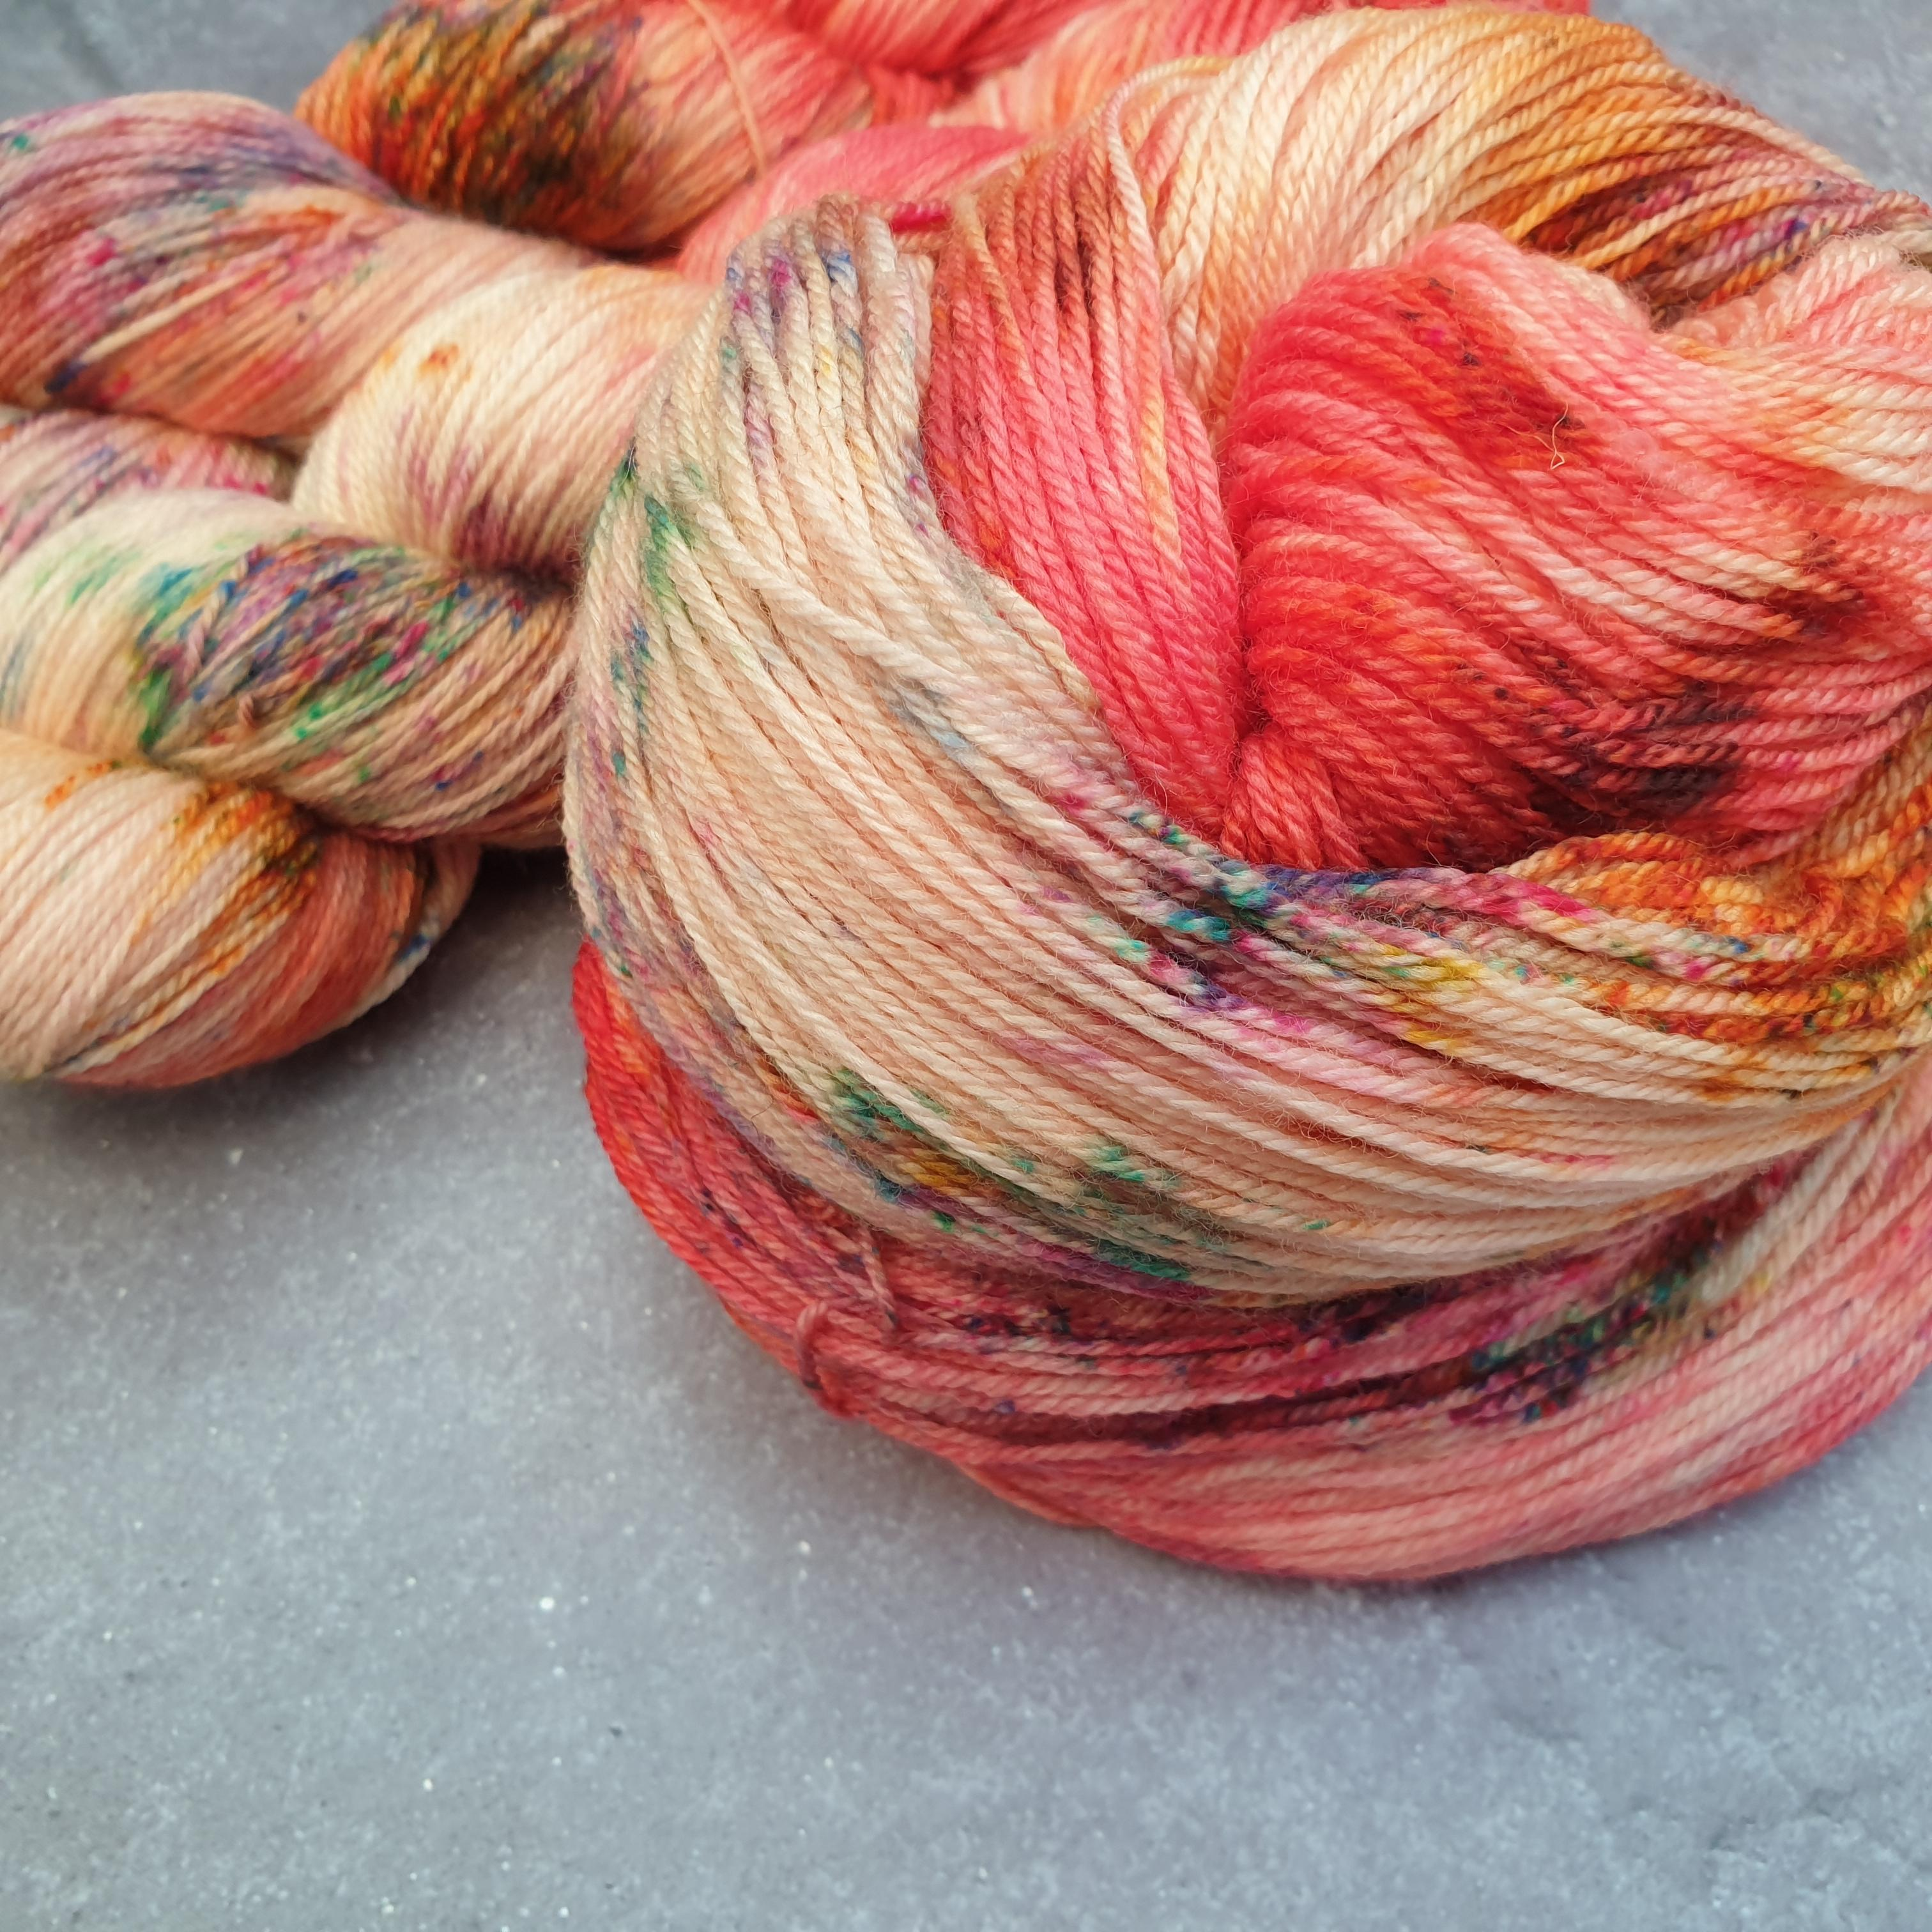 CHARITY YYF COLOURWAY Summer Breeze. 100% Merino 4-ply/fingering